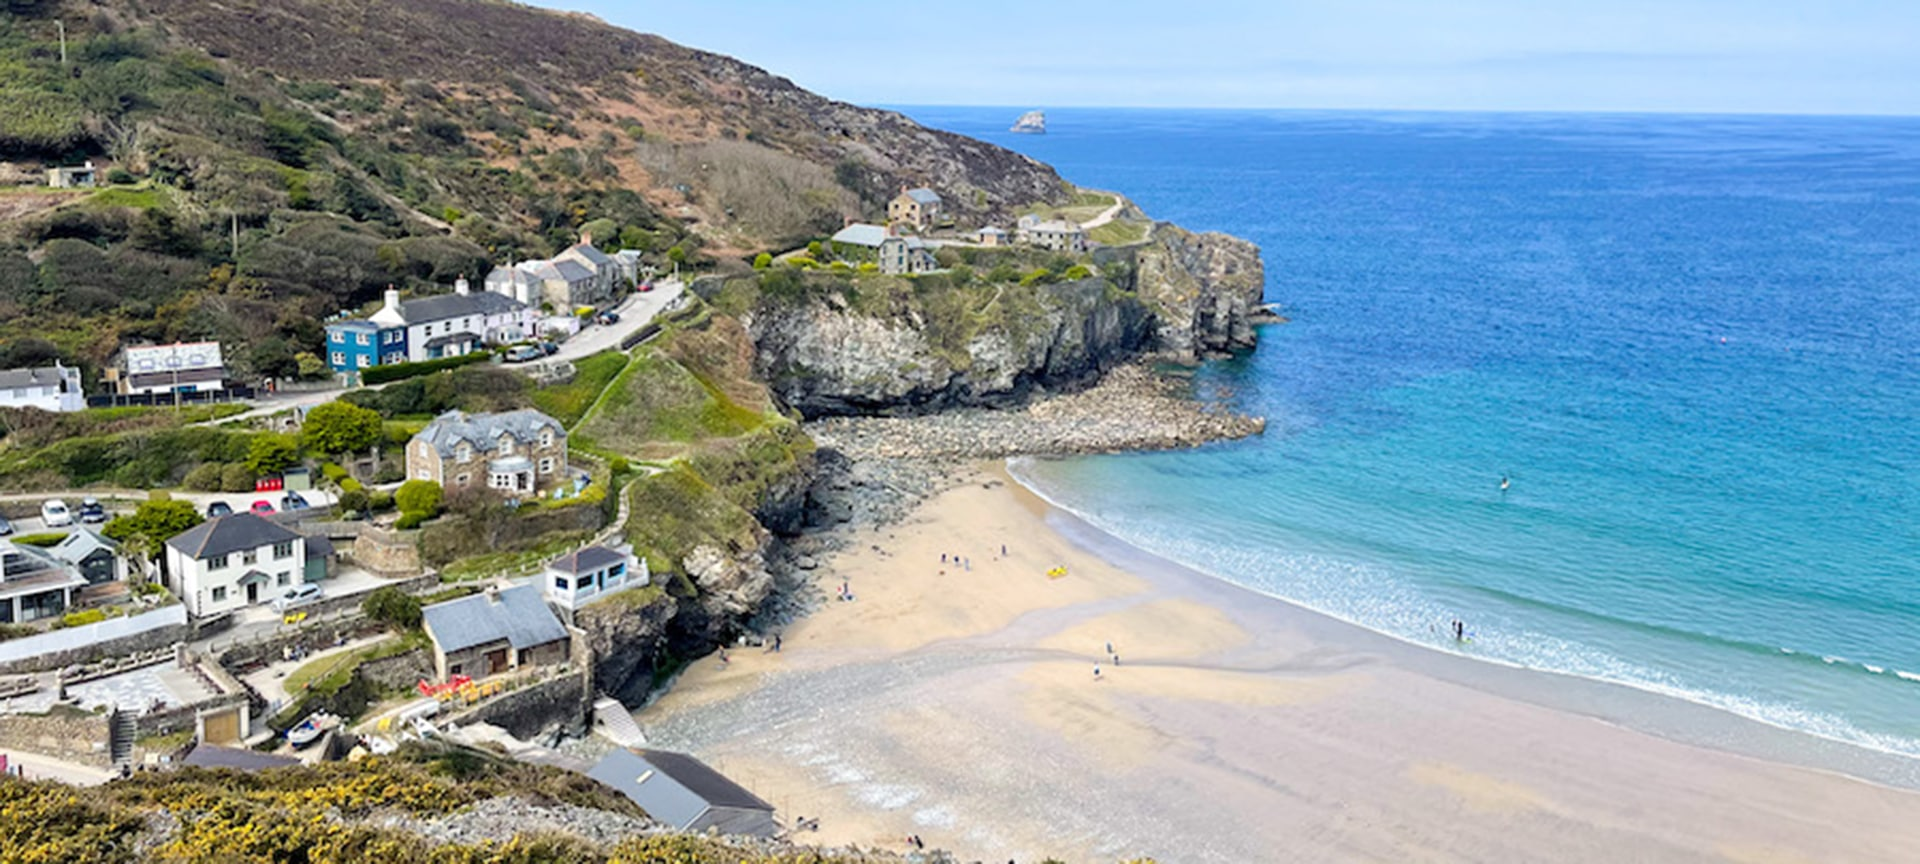 Trevaunance Cove is the main beach in St Agnes. The beach is dominated by the high cliffs to the north and there are plenty of reminders of the areas mining heritage to be seen. With its sand and shingle mix, it is especially popular with families year round with so much to explore including the old harbour and numerous caves. At low tide large areas of rocks and rock pools are revealed and it gives you the opportunity to walk to the adjacent beach of Trevallas Porth.